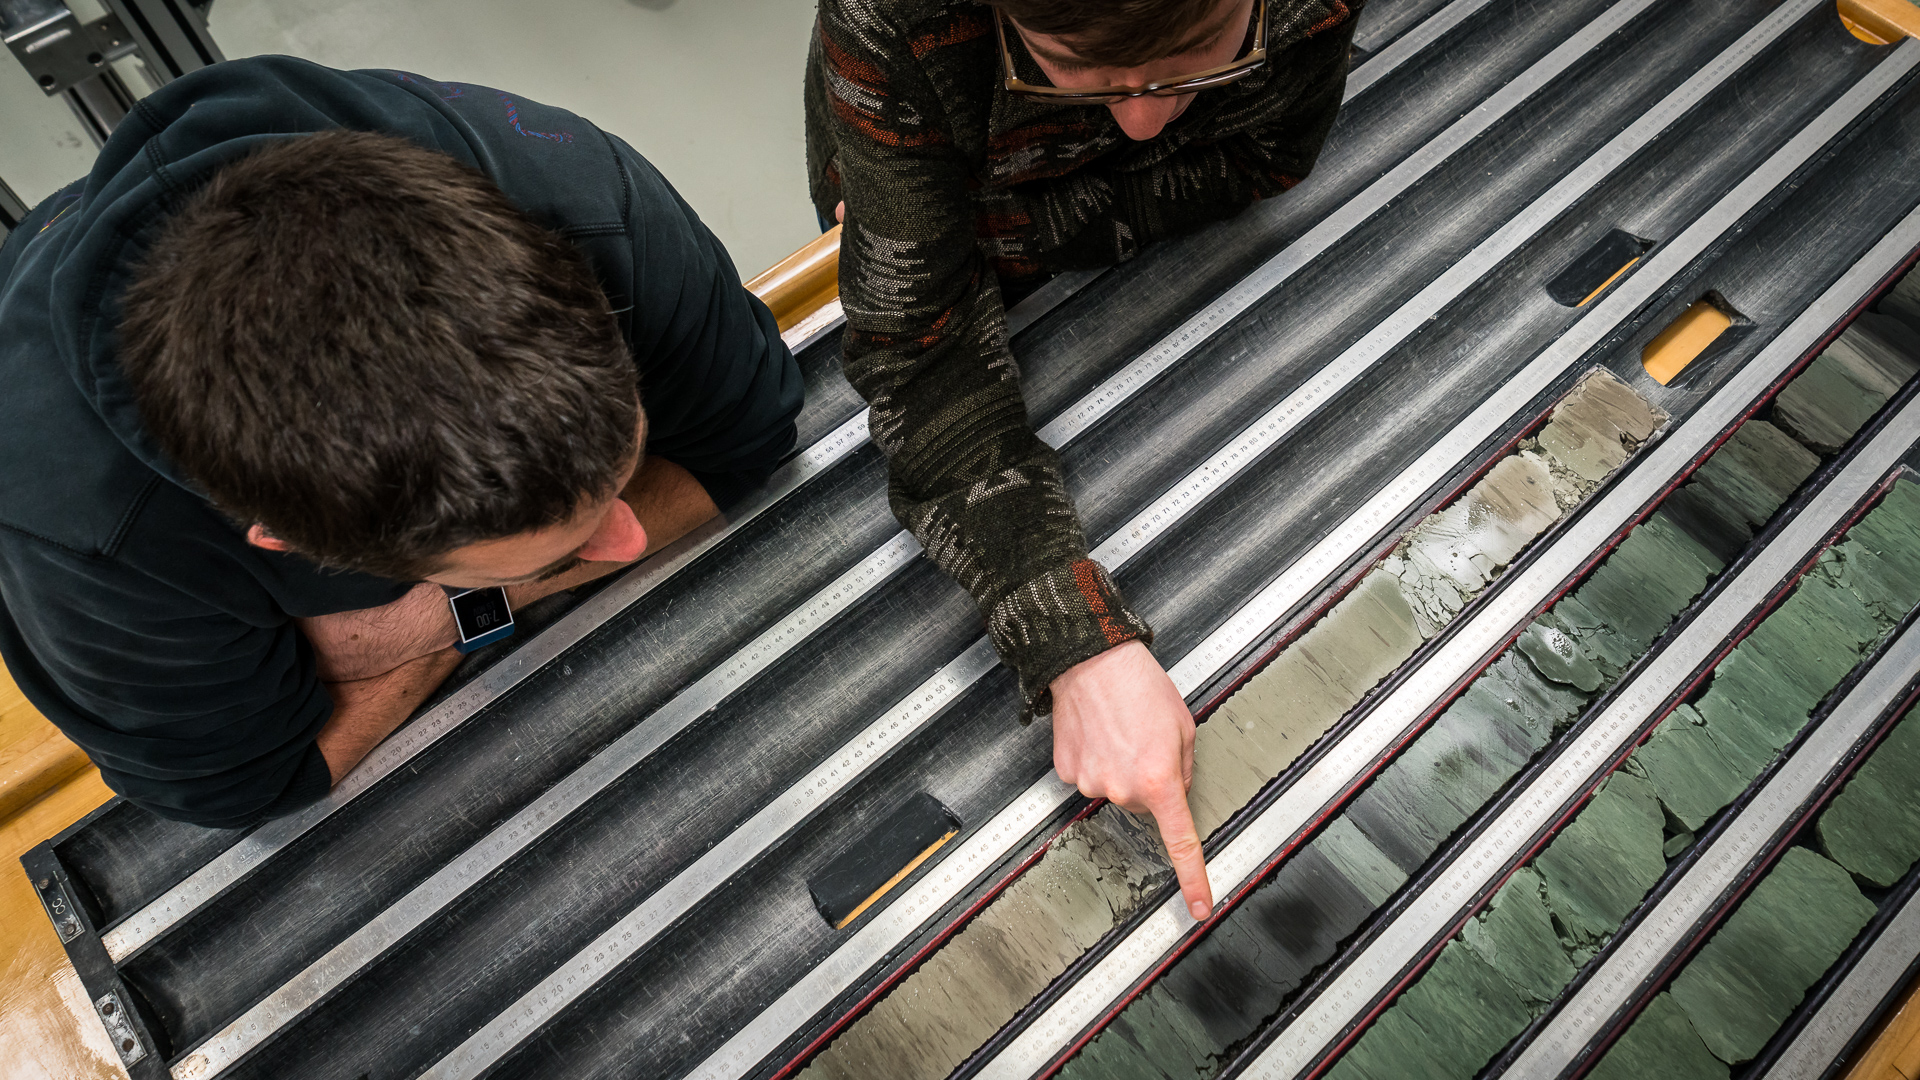 Scientists discuss different climatic events that can be 'read' in the core samples. Through time sediments are deposited on the seafloor building up layers that trained scientists can read like a book.